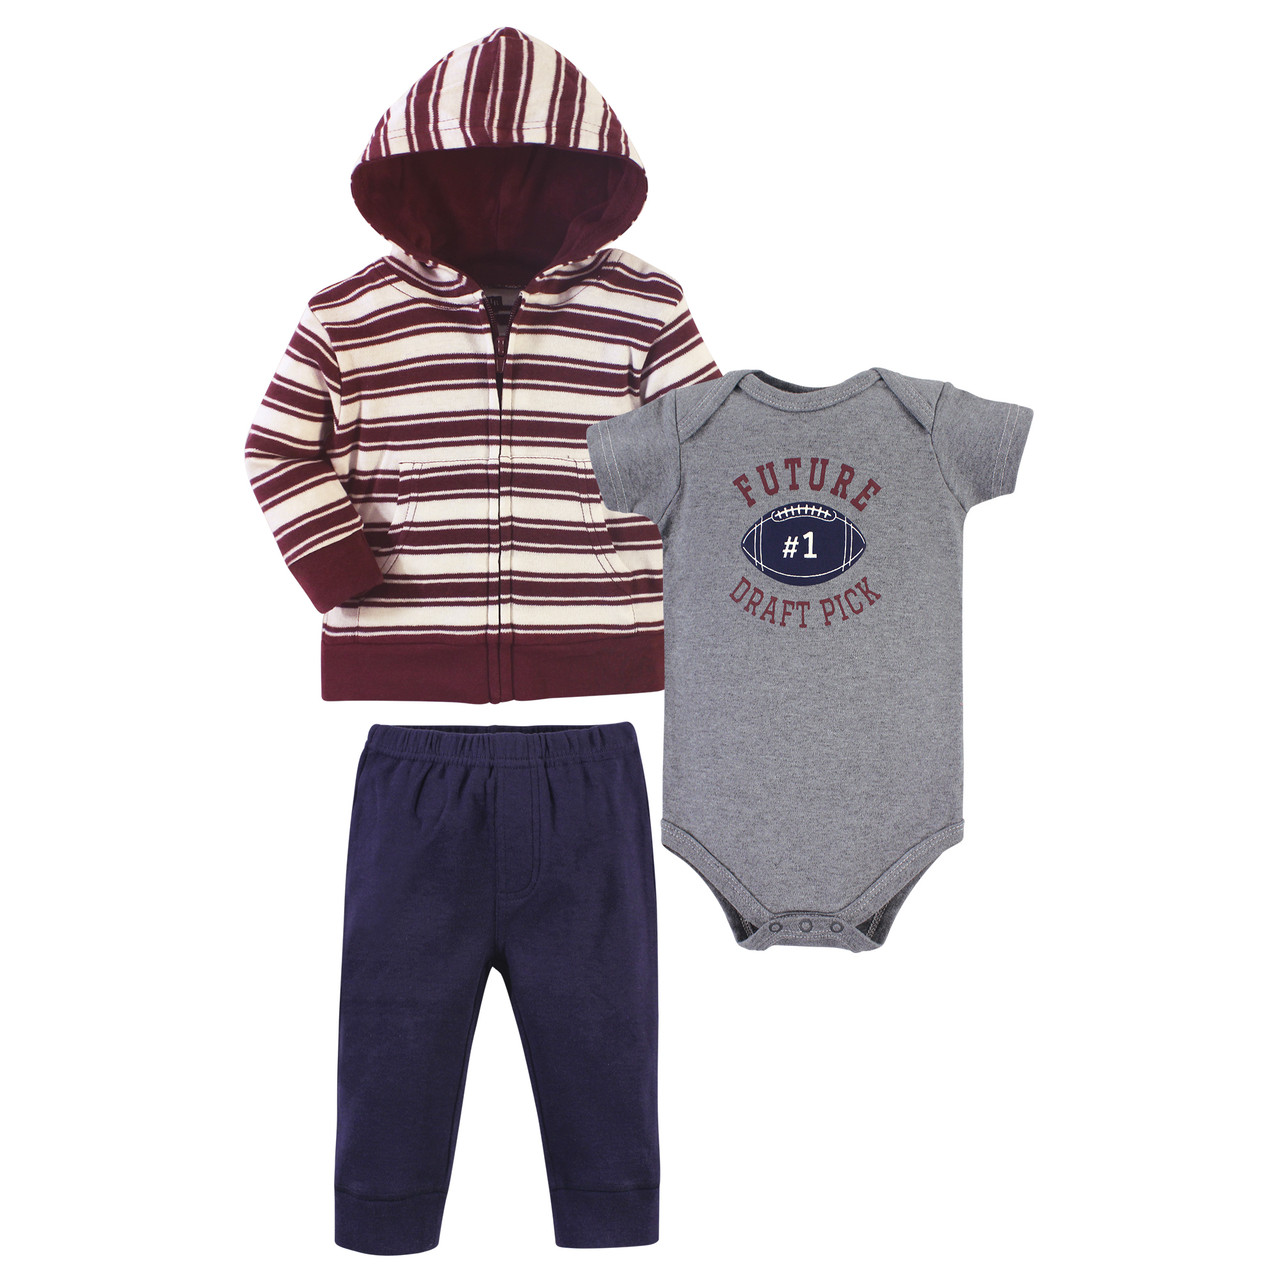 Hudson Baby Unisex Cotton Hoodie Bodysuit or Tee Top and Pant Set